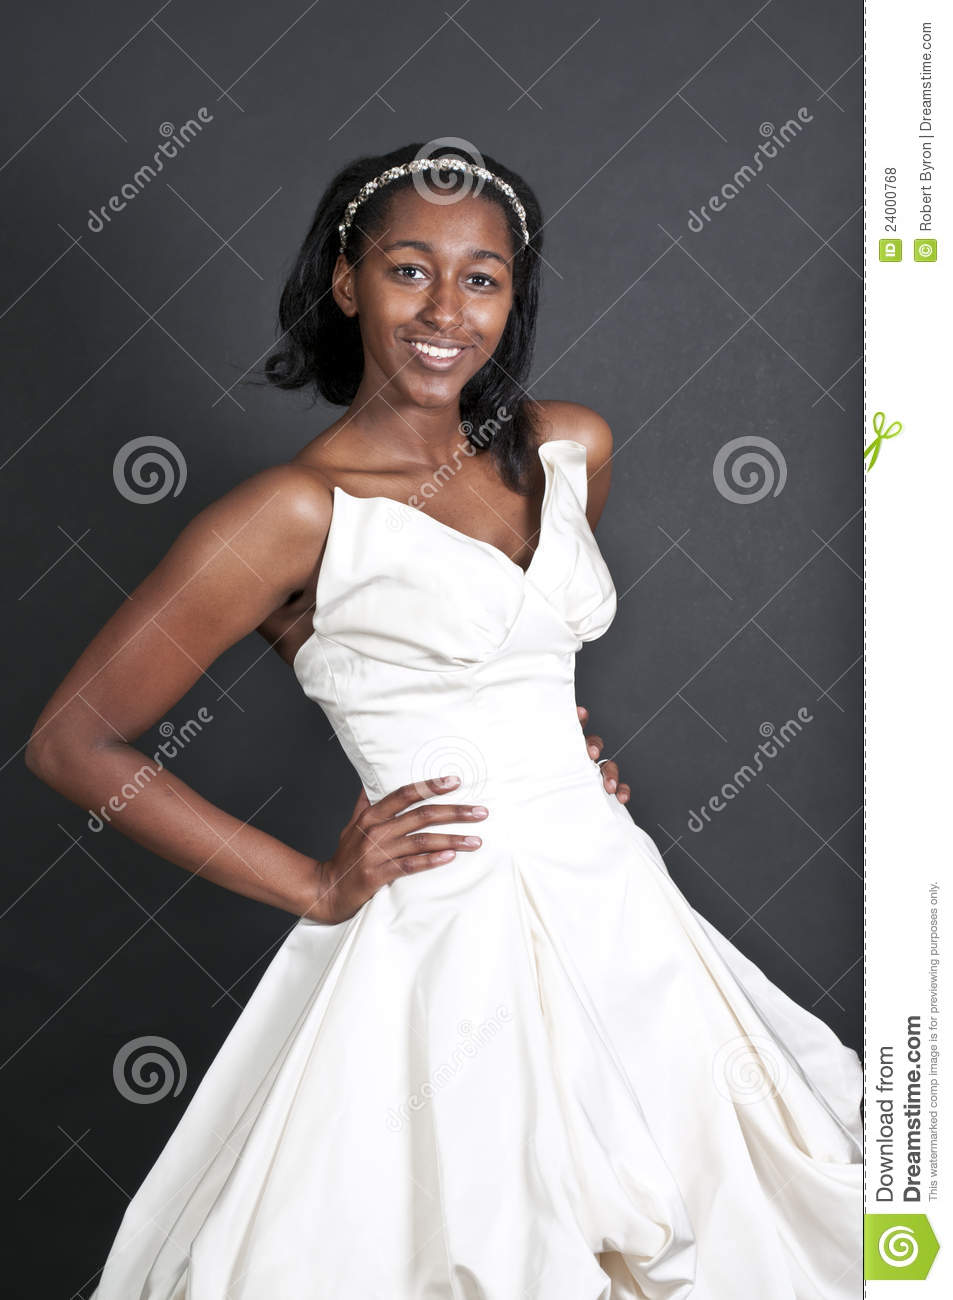 Black woman in wedding dress stock photo image 24000768 for Woman in wedding dress